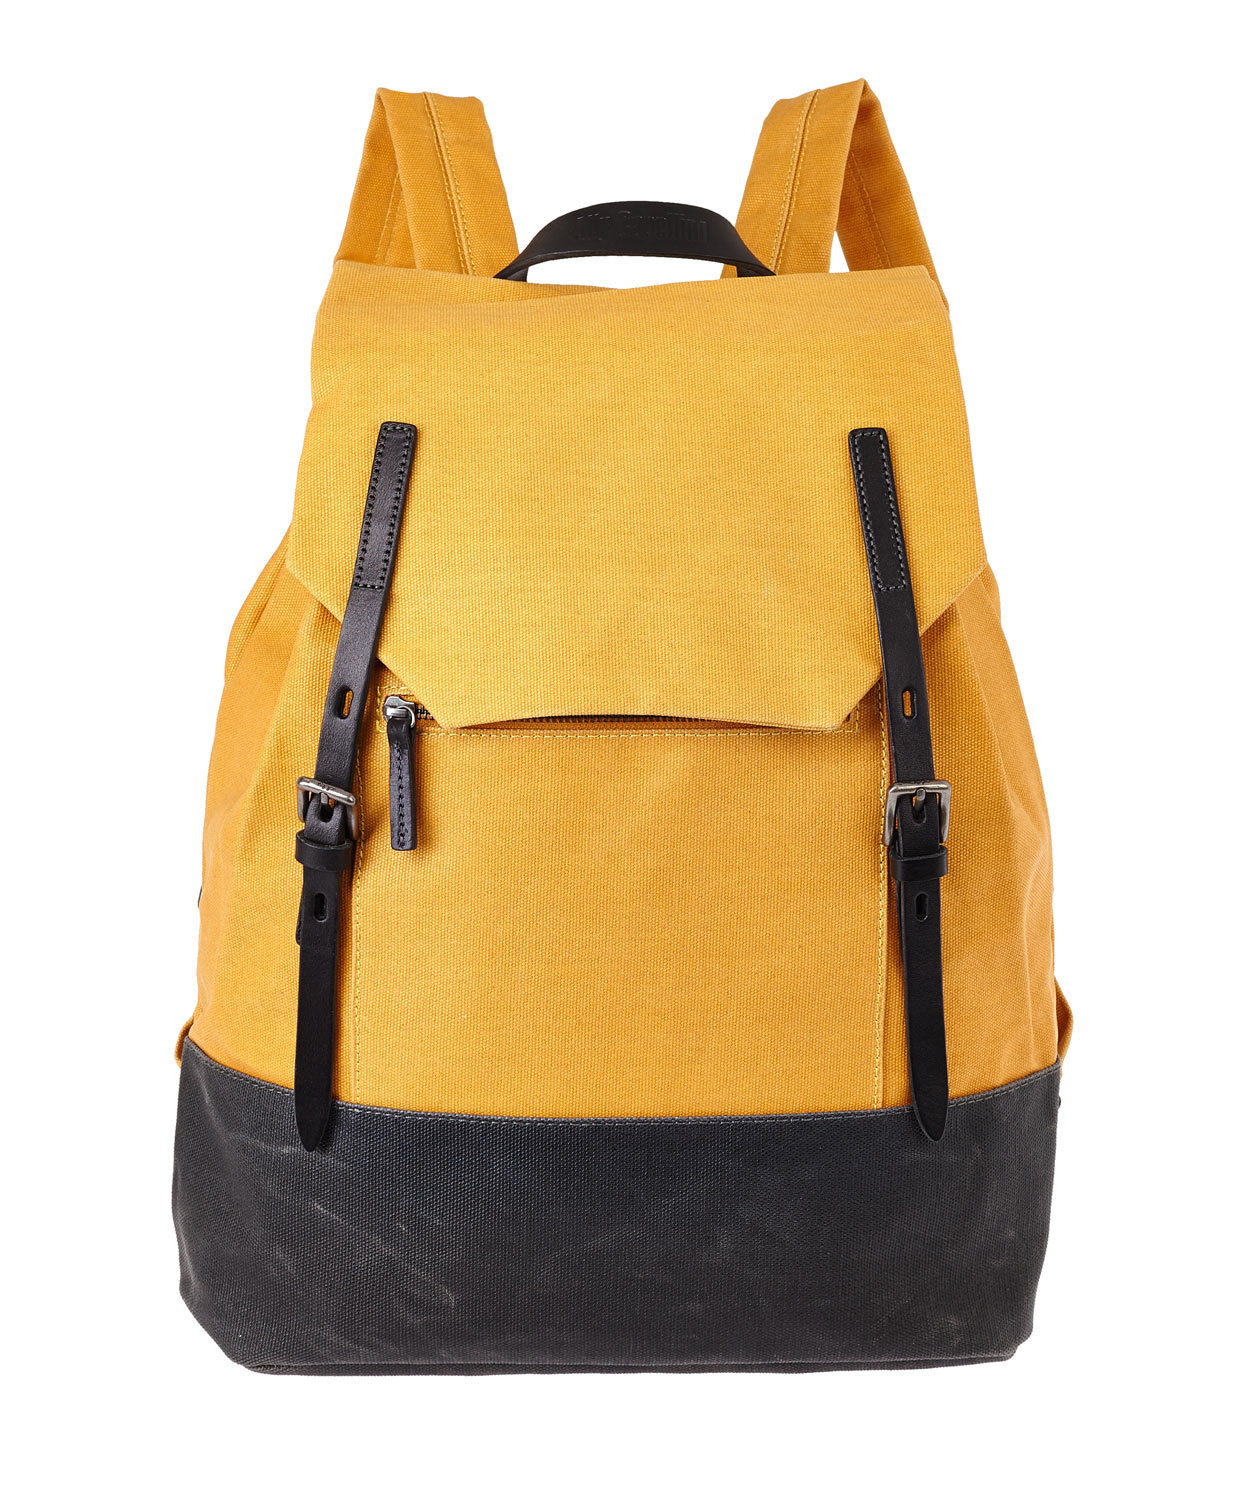 Ally Capellino Mustard Dean Waxed Canvas Backpack In